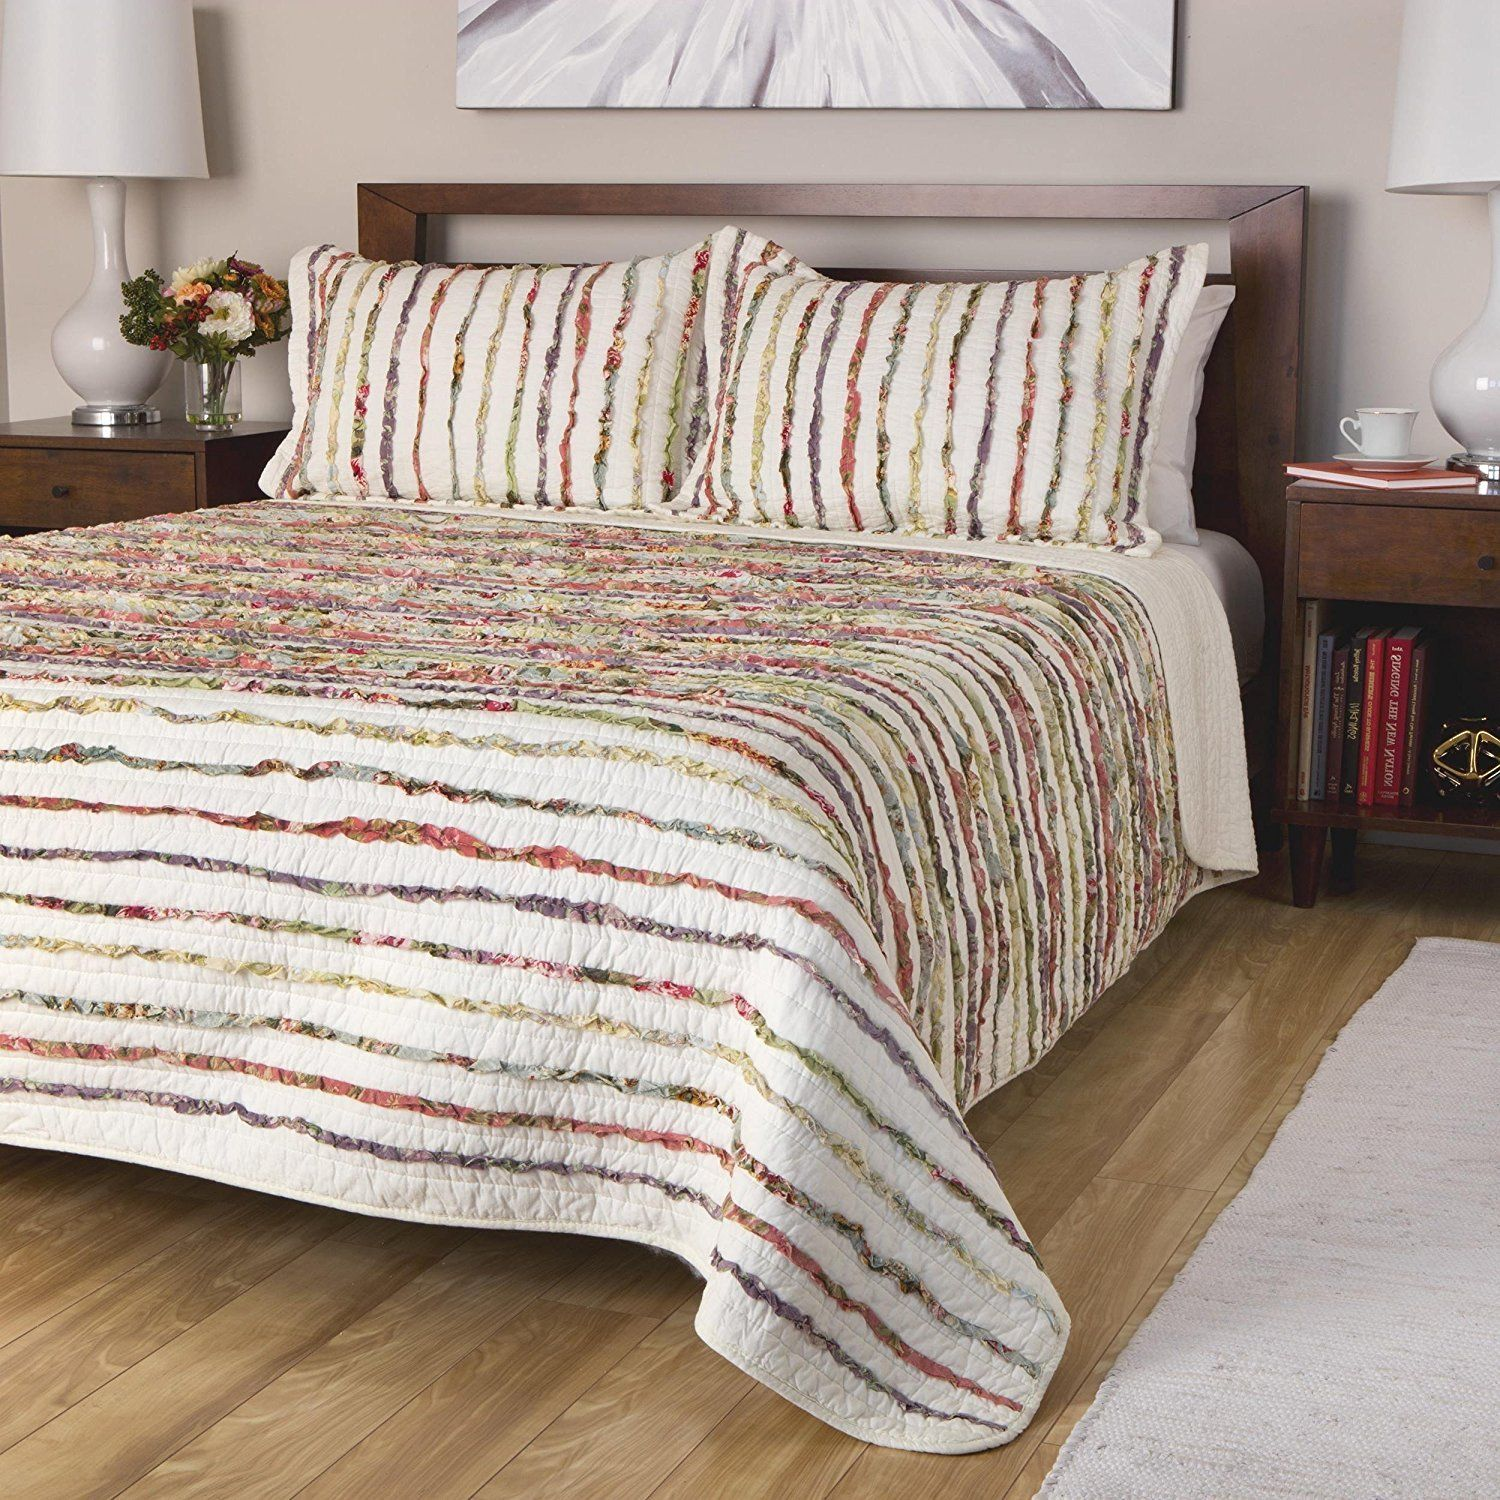 for bedroom pertaining rustic your tags comforter colored king home cream and red size bedding to inspiration sophisticated sets modern